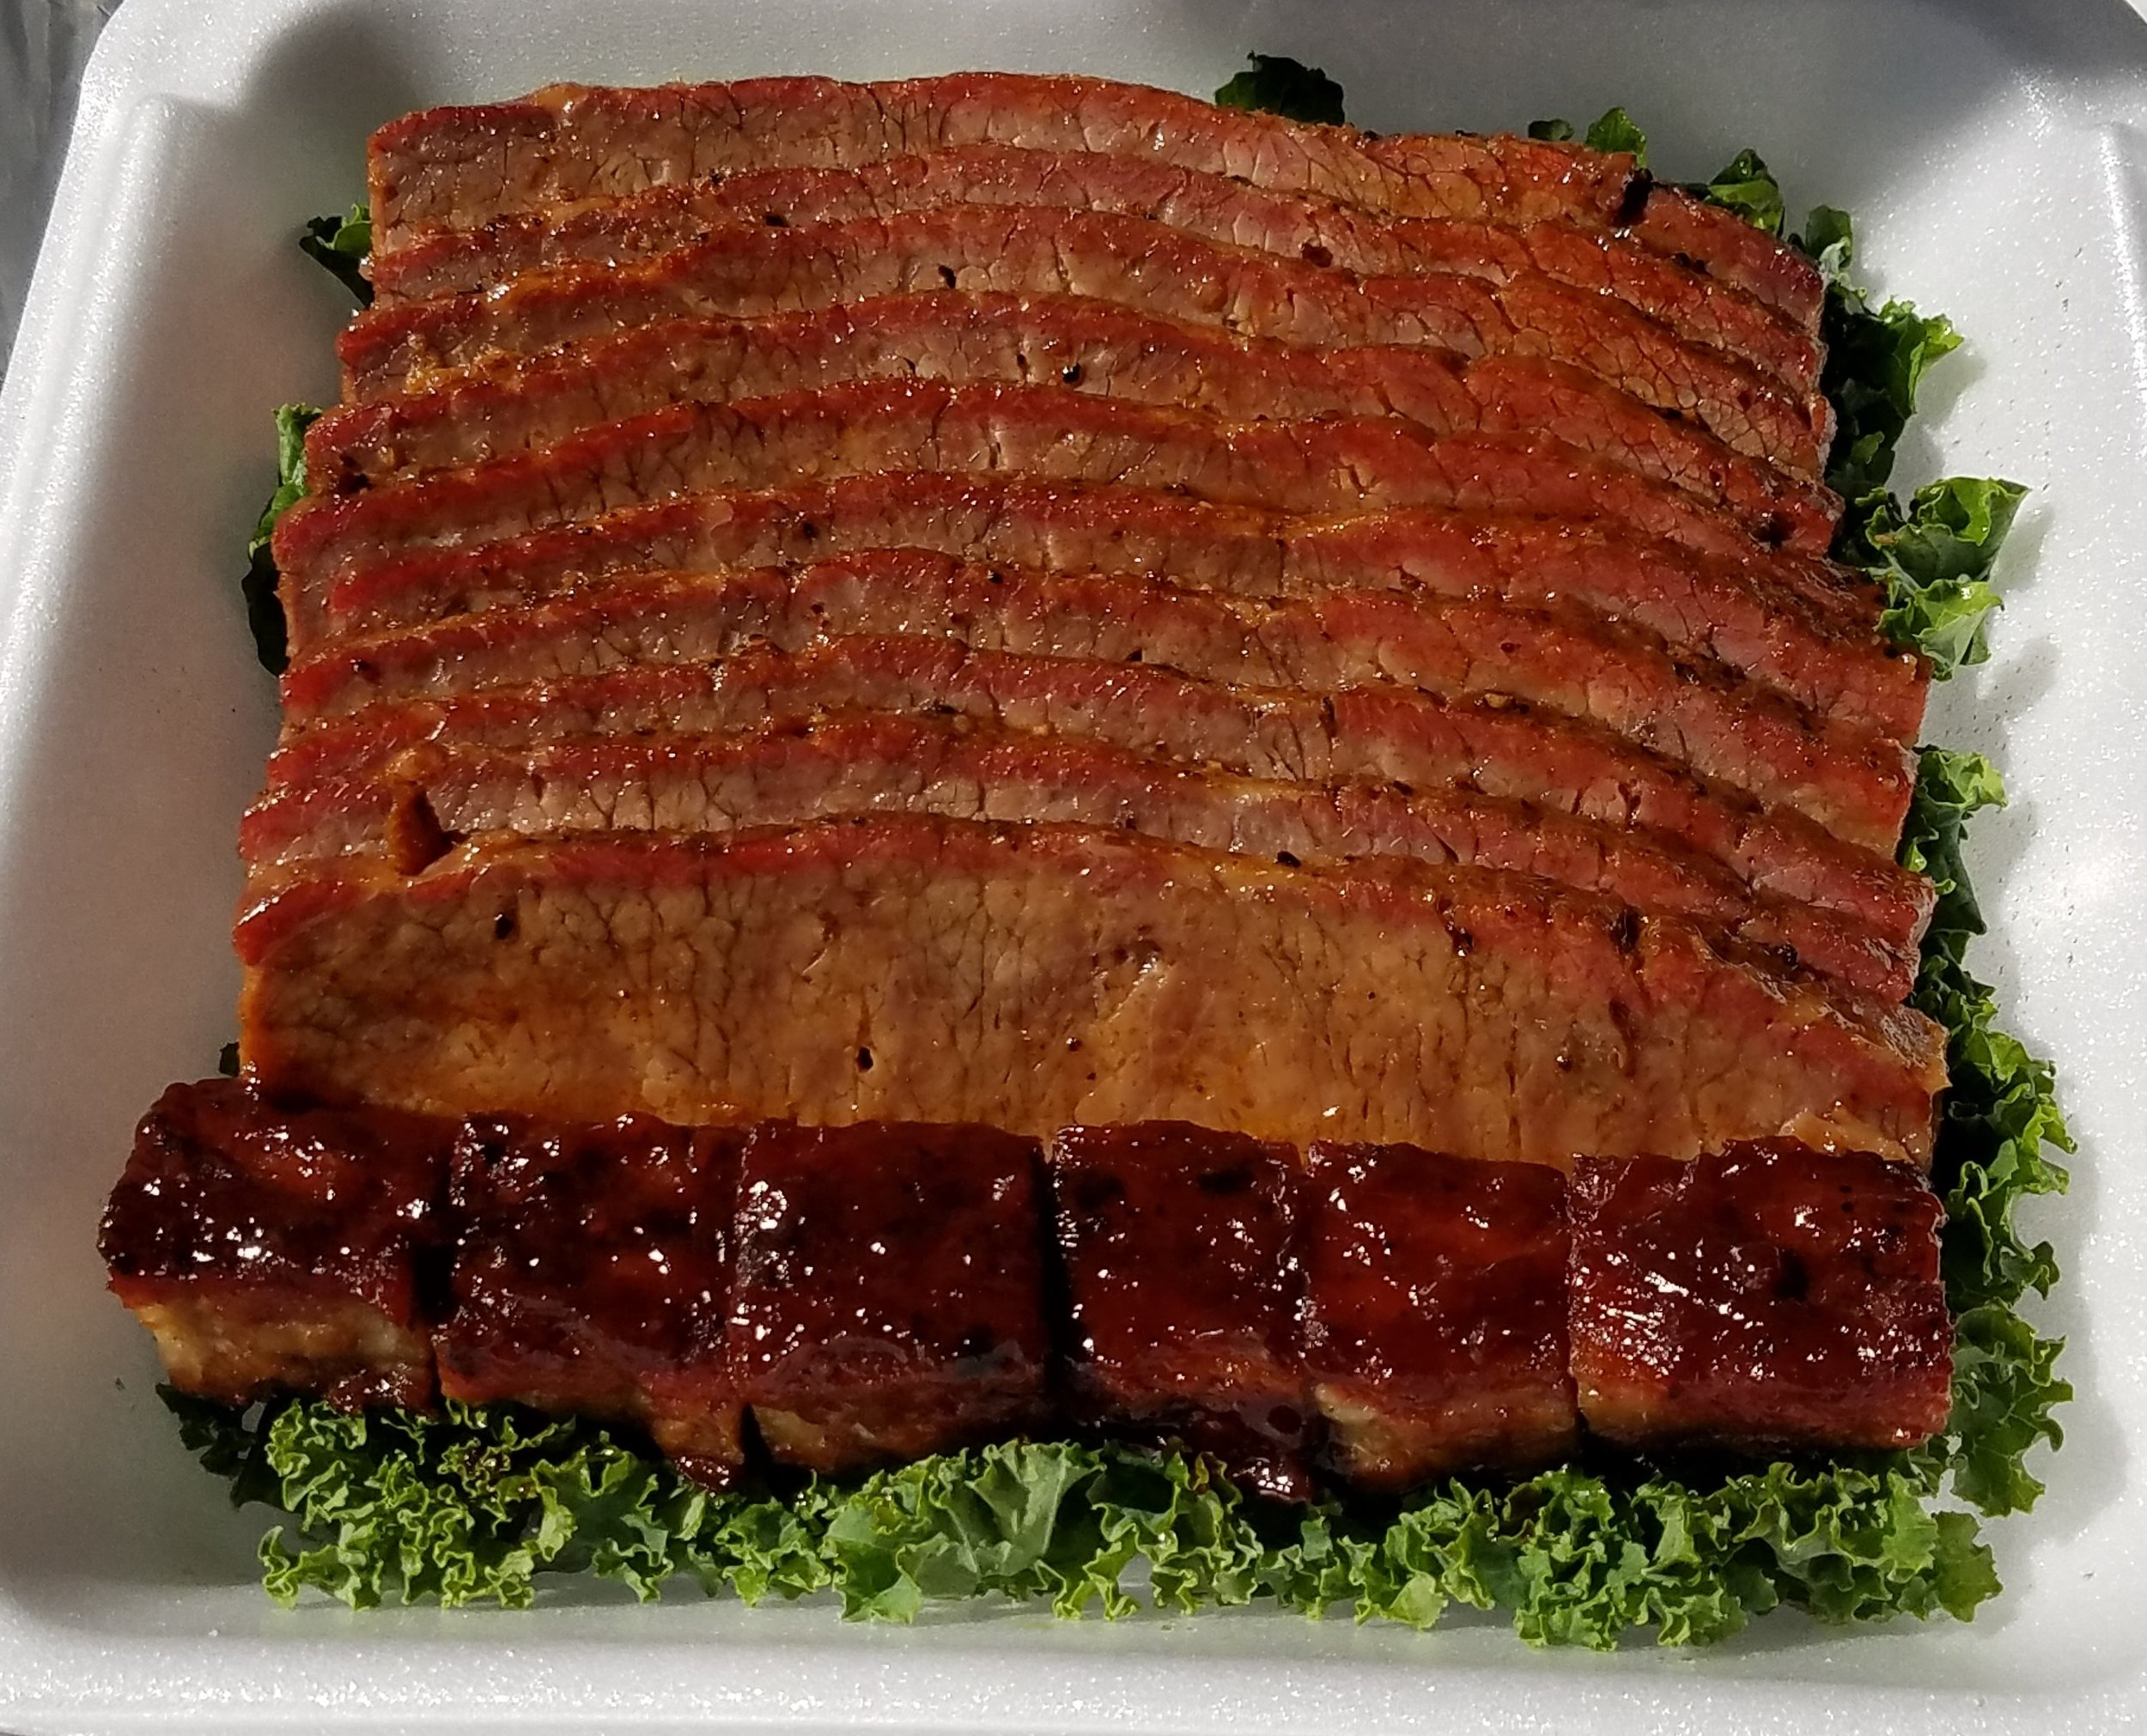 Brisket - Turn In Box above 2 .jpg